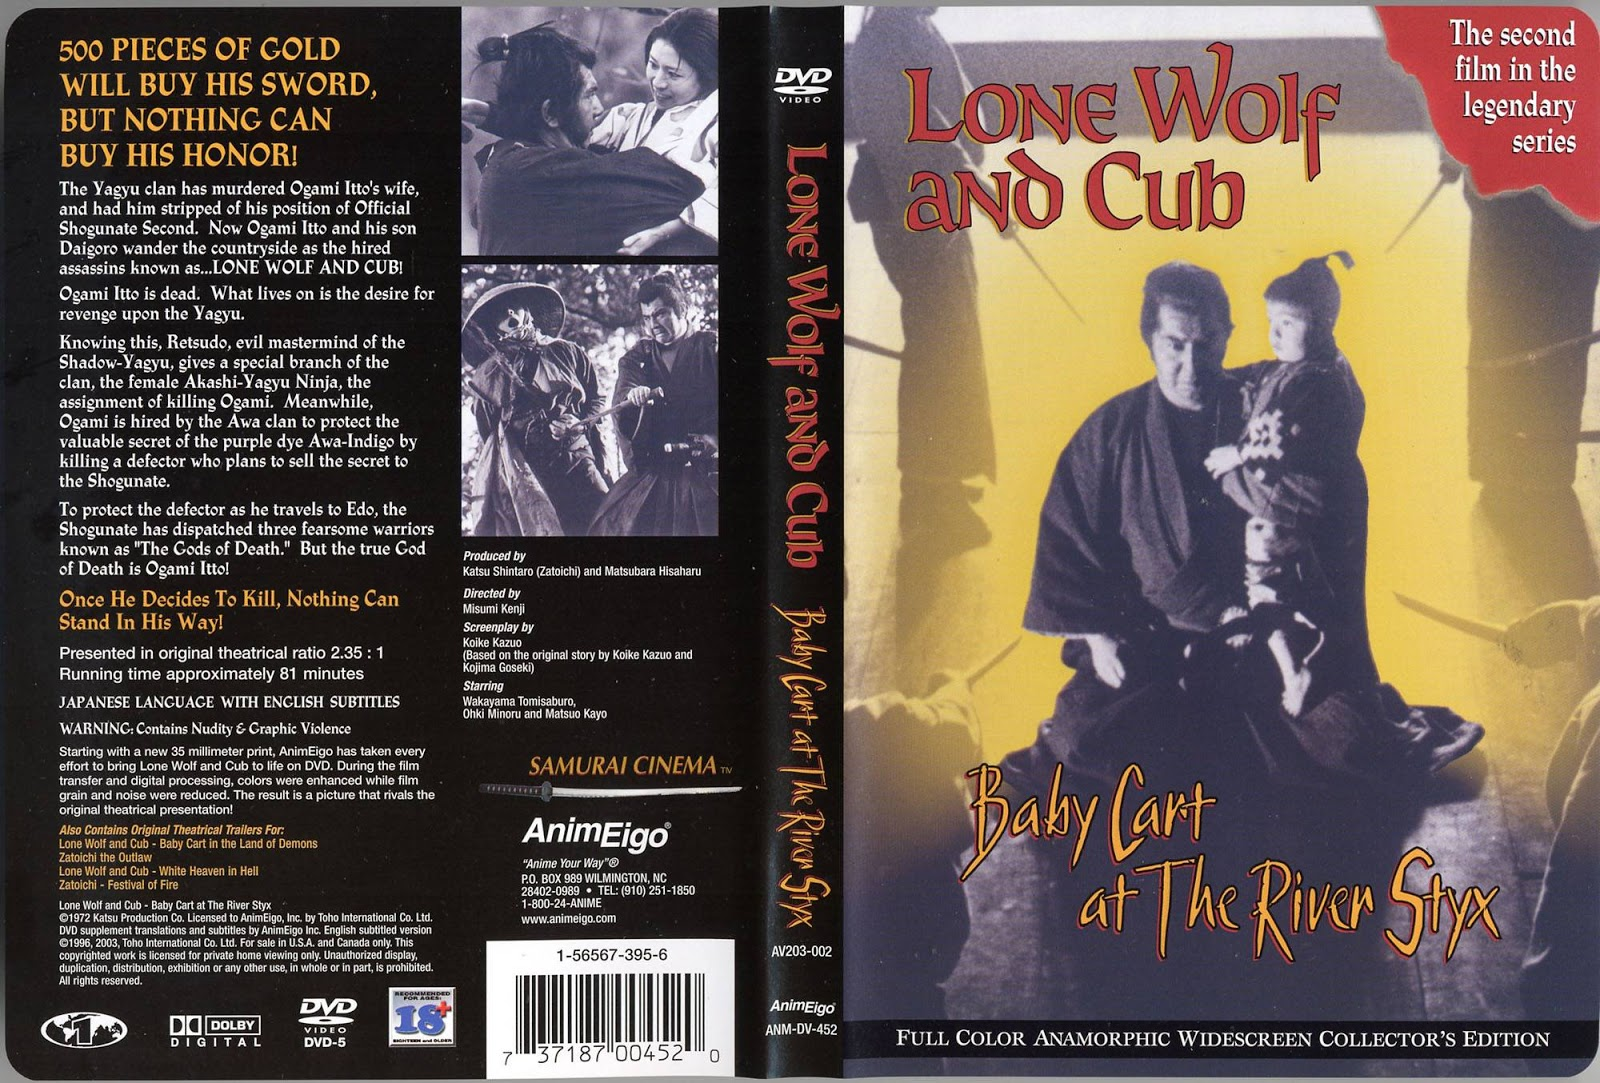 Francine Rivers Libros En Español Pdf Lone Wolf And Cub Vol 2 Baby Cart At The River Styx 1972